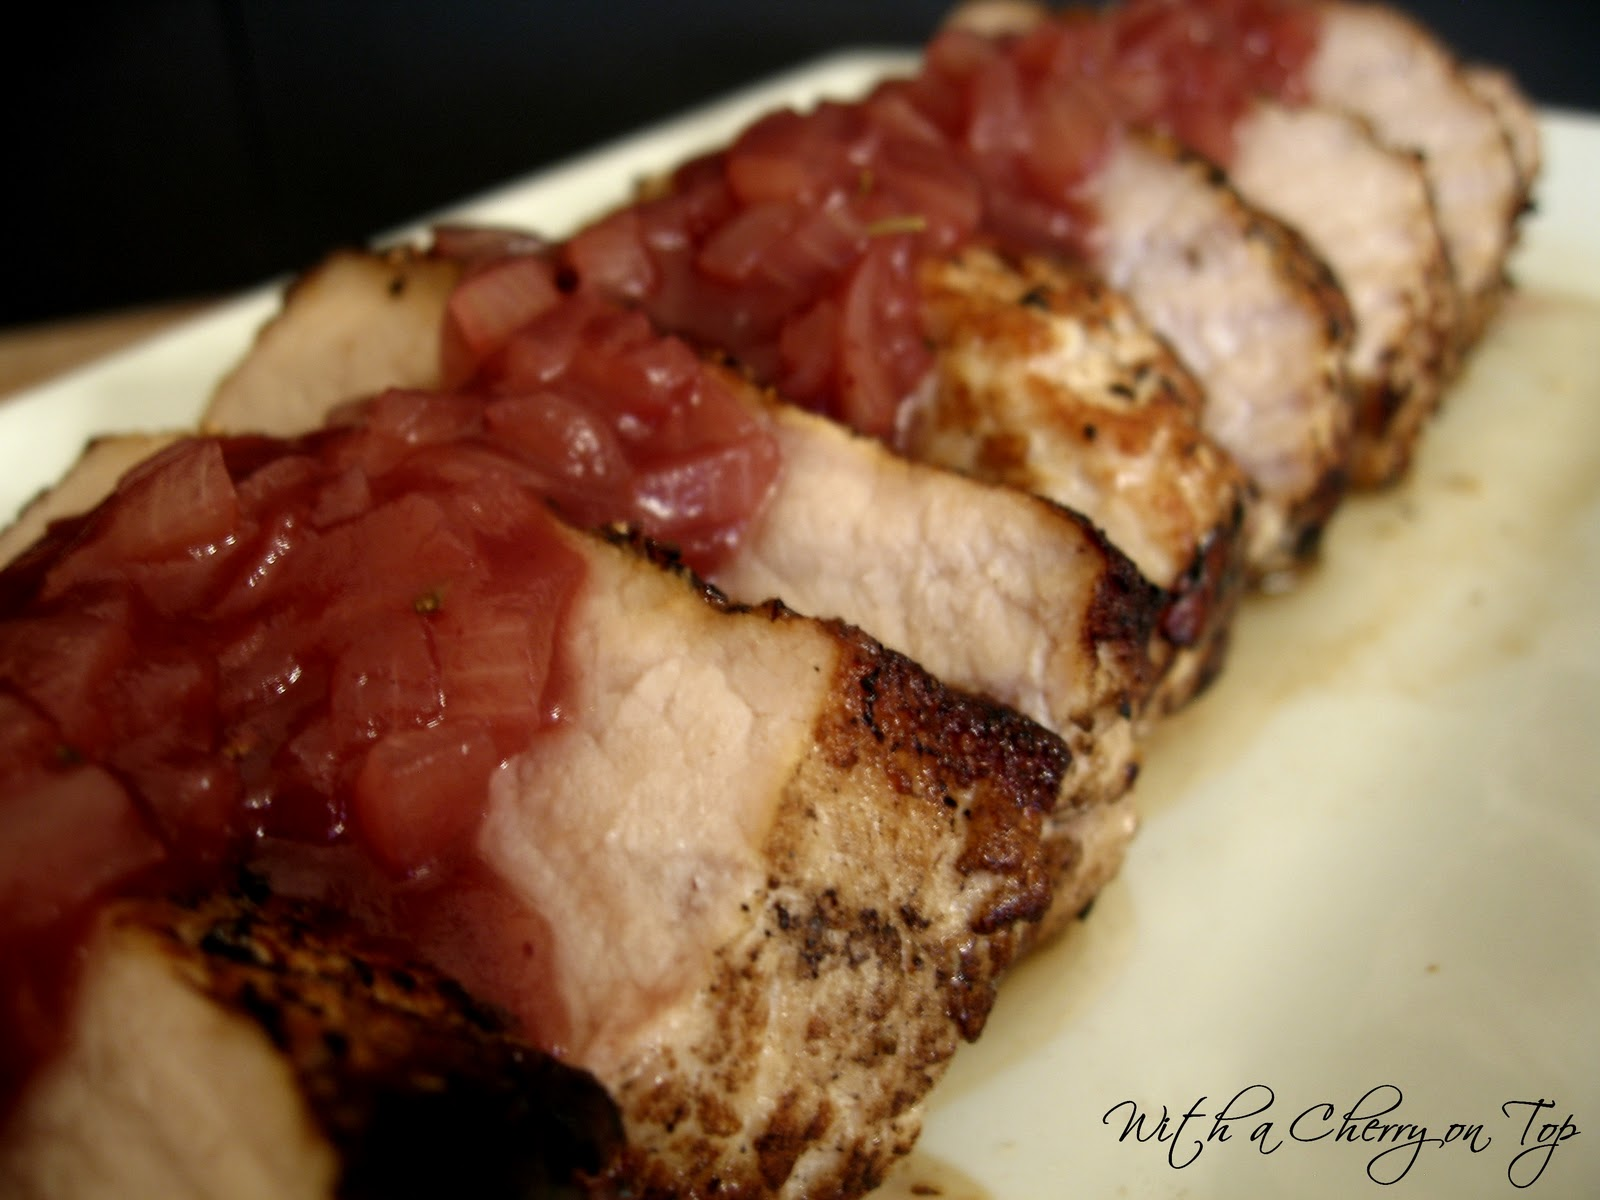 With a Cherry on Top: Pork Loin with Cranberry Sauce